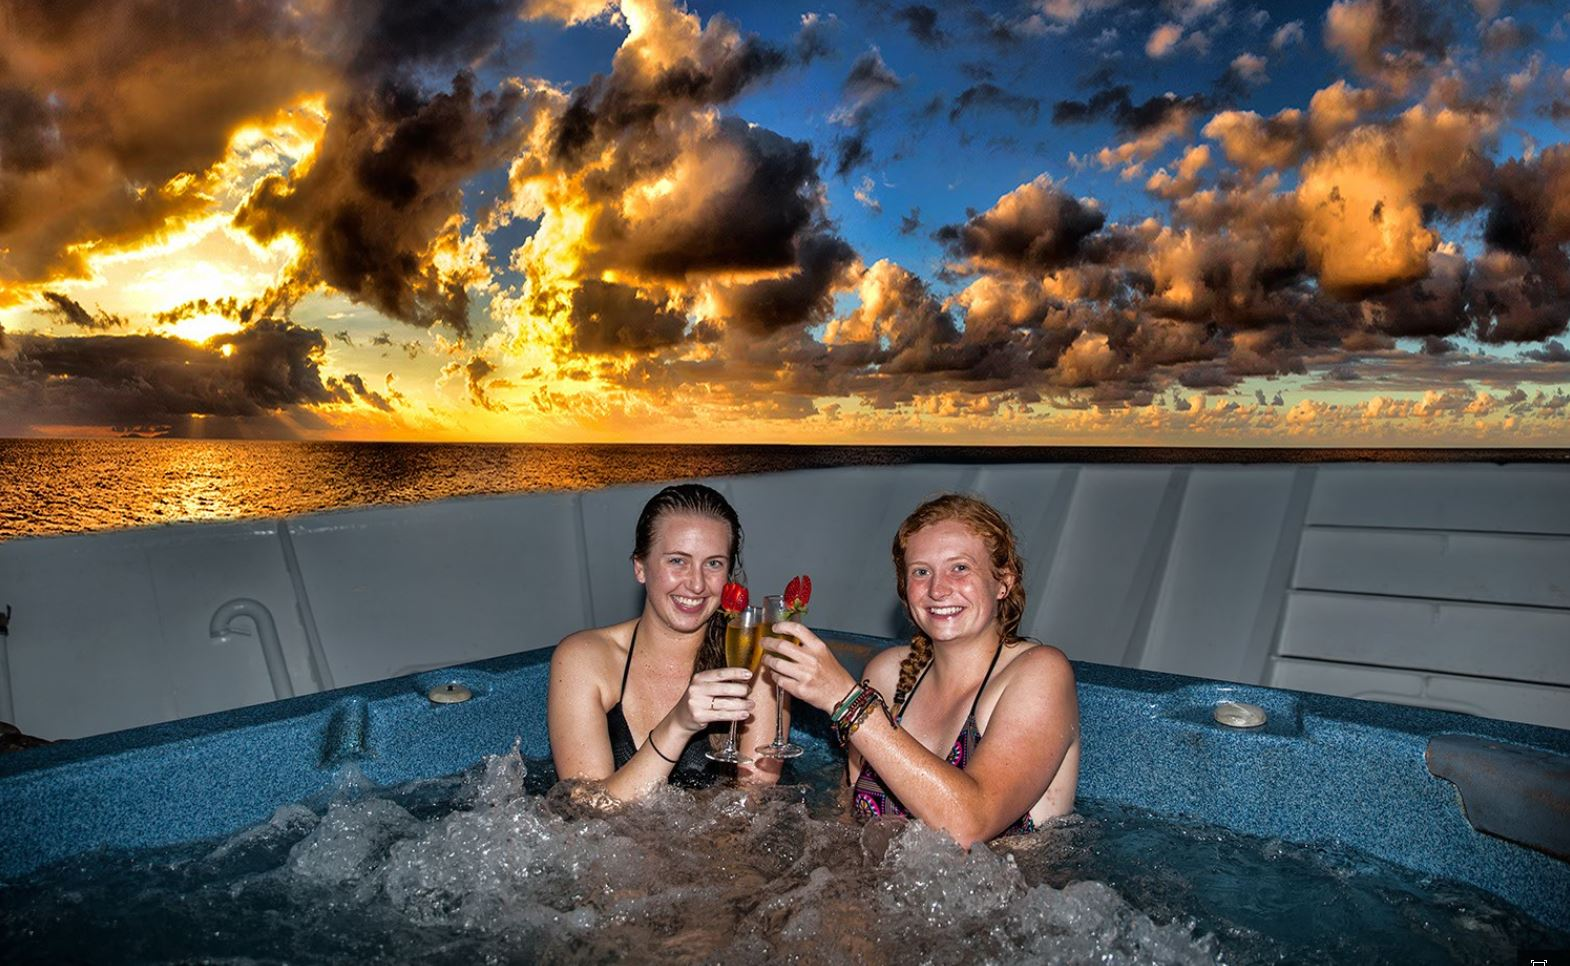 Watch the sunset from hot tub